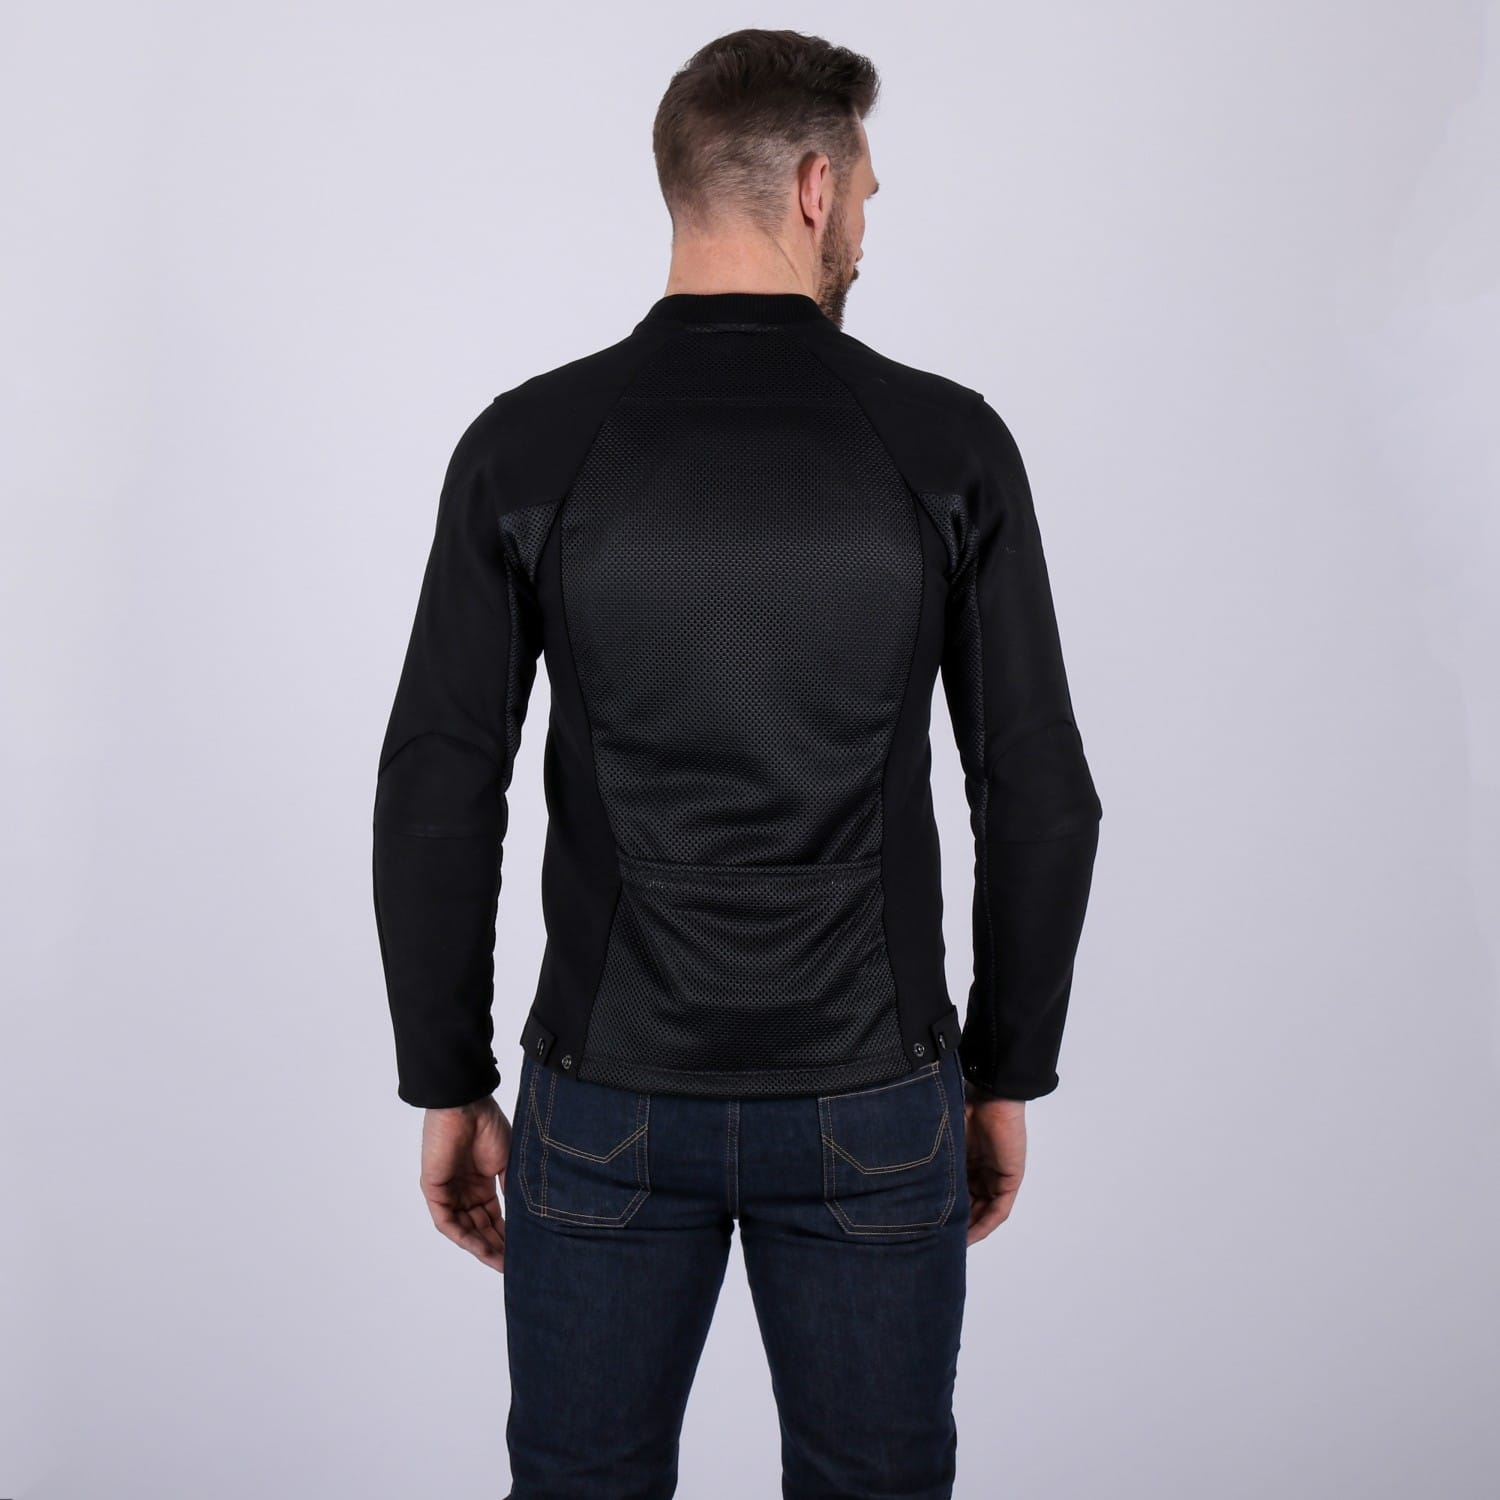 73c6be1c Men's Over Layers – Knox